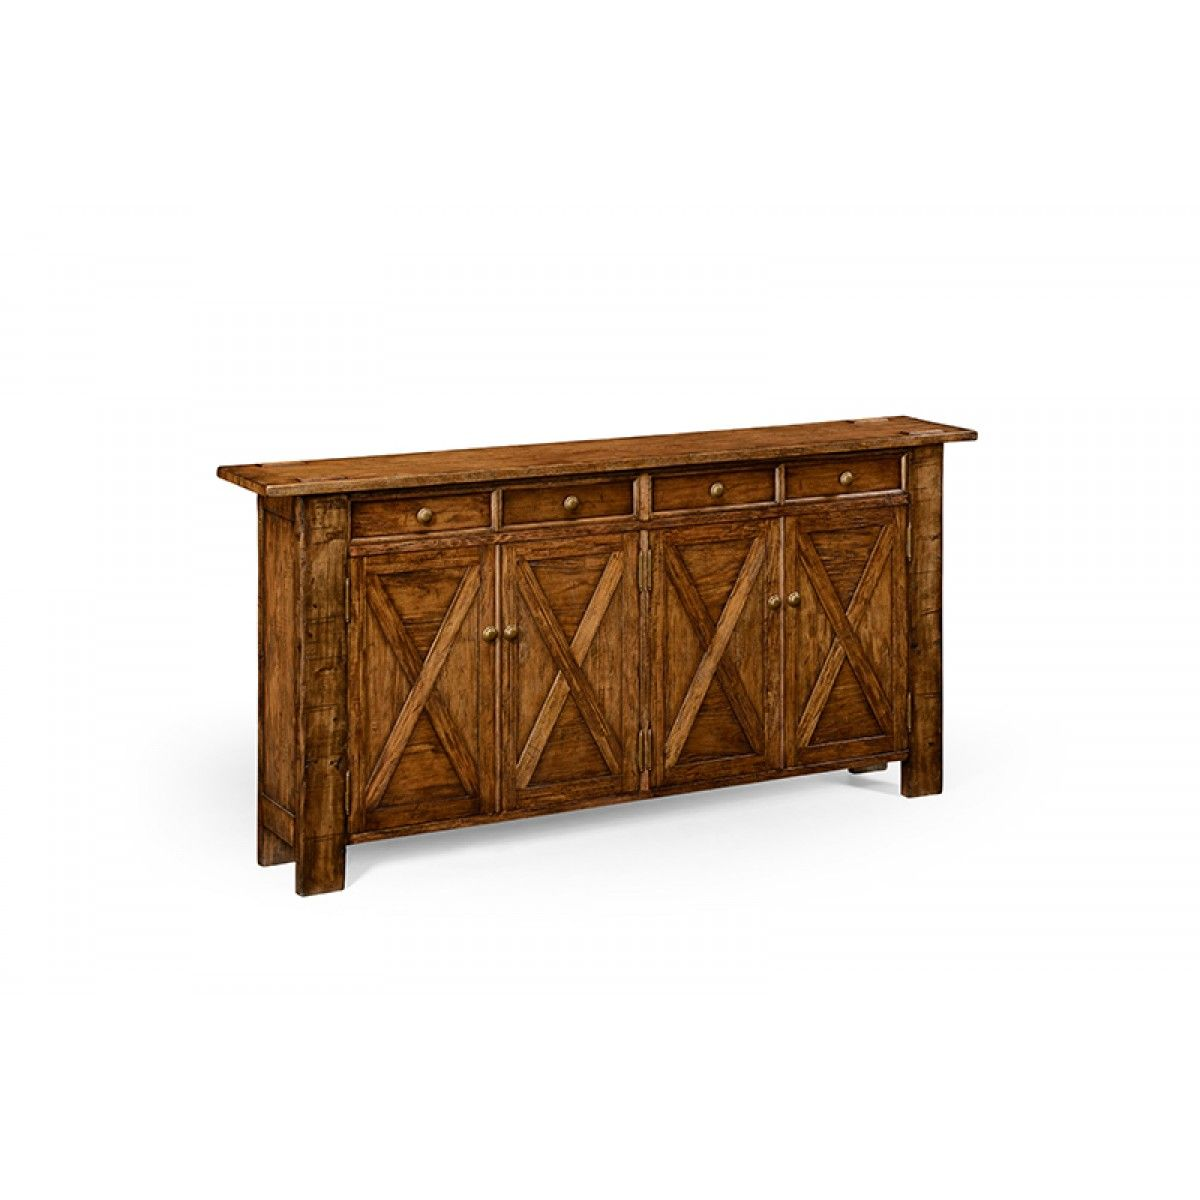 Jonathan Charles Country Living Style Walnut Sideboard Narrow Sideboard Country Sideboard Narrow Buffet Table